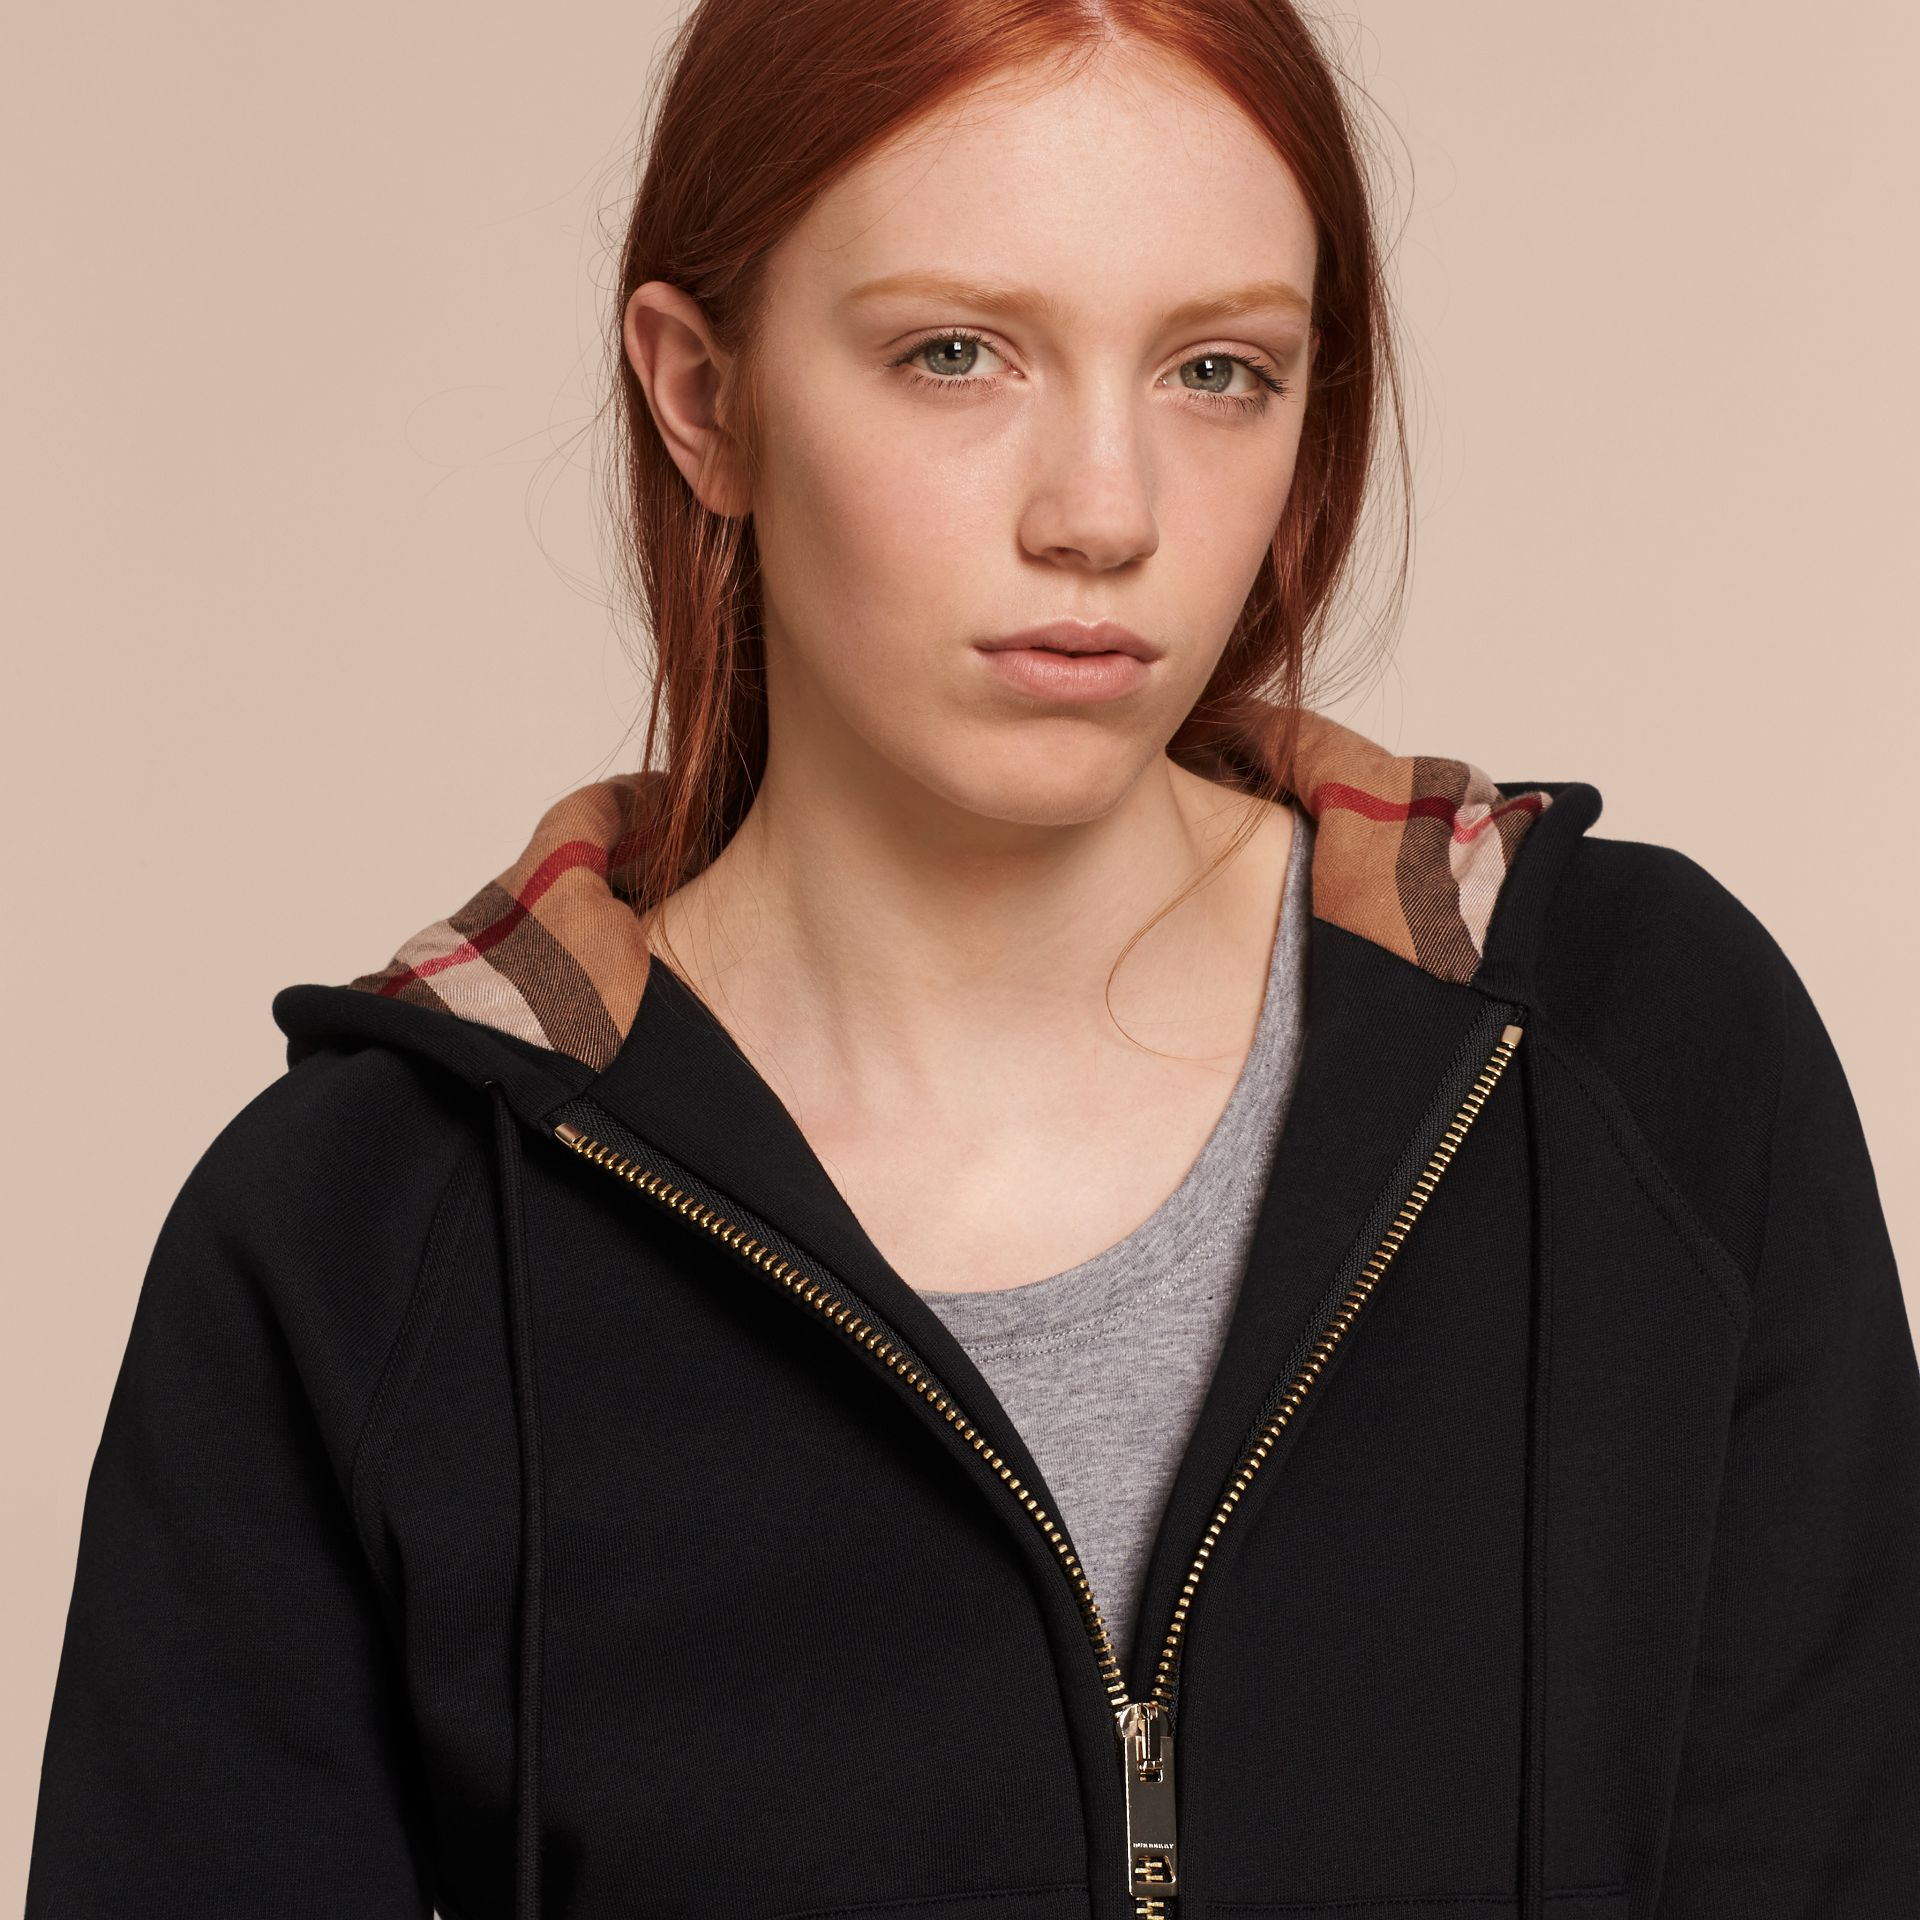 Hooded Zip-front Cotton Blend  Sweatshirt in Black - Women | Burberry - gallery image 6